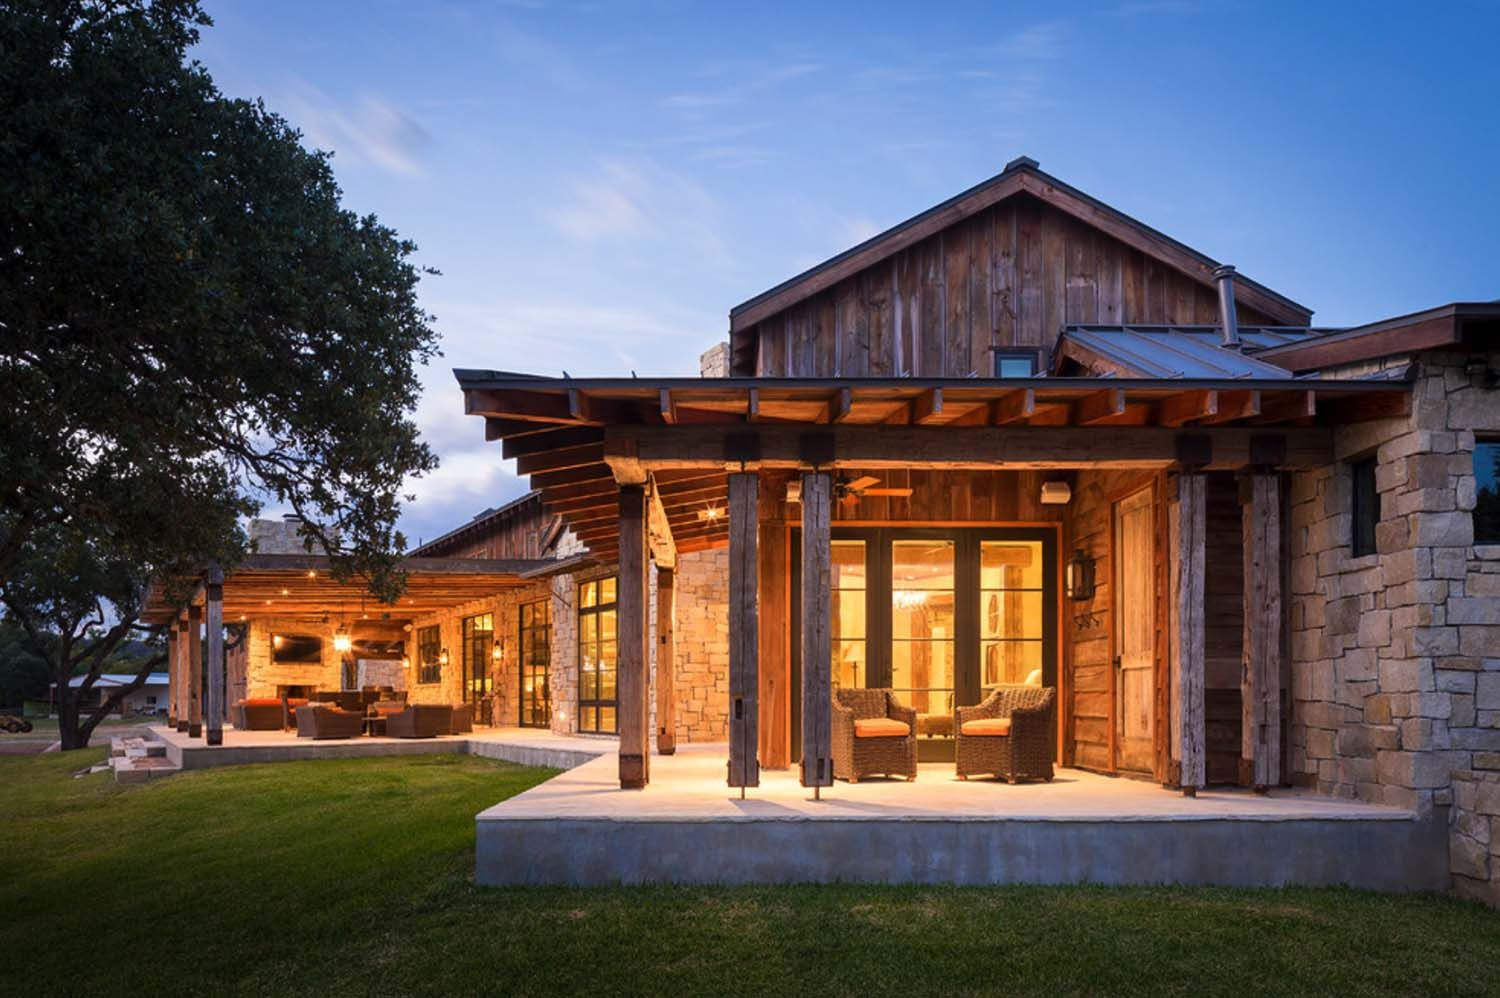 Modern rustic barn style retreat in texas hill country for Texas farm houses